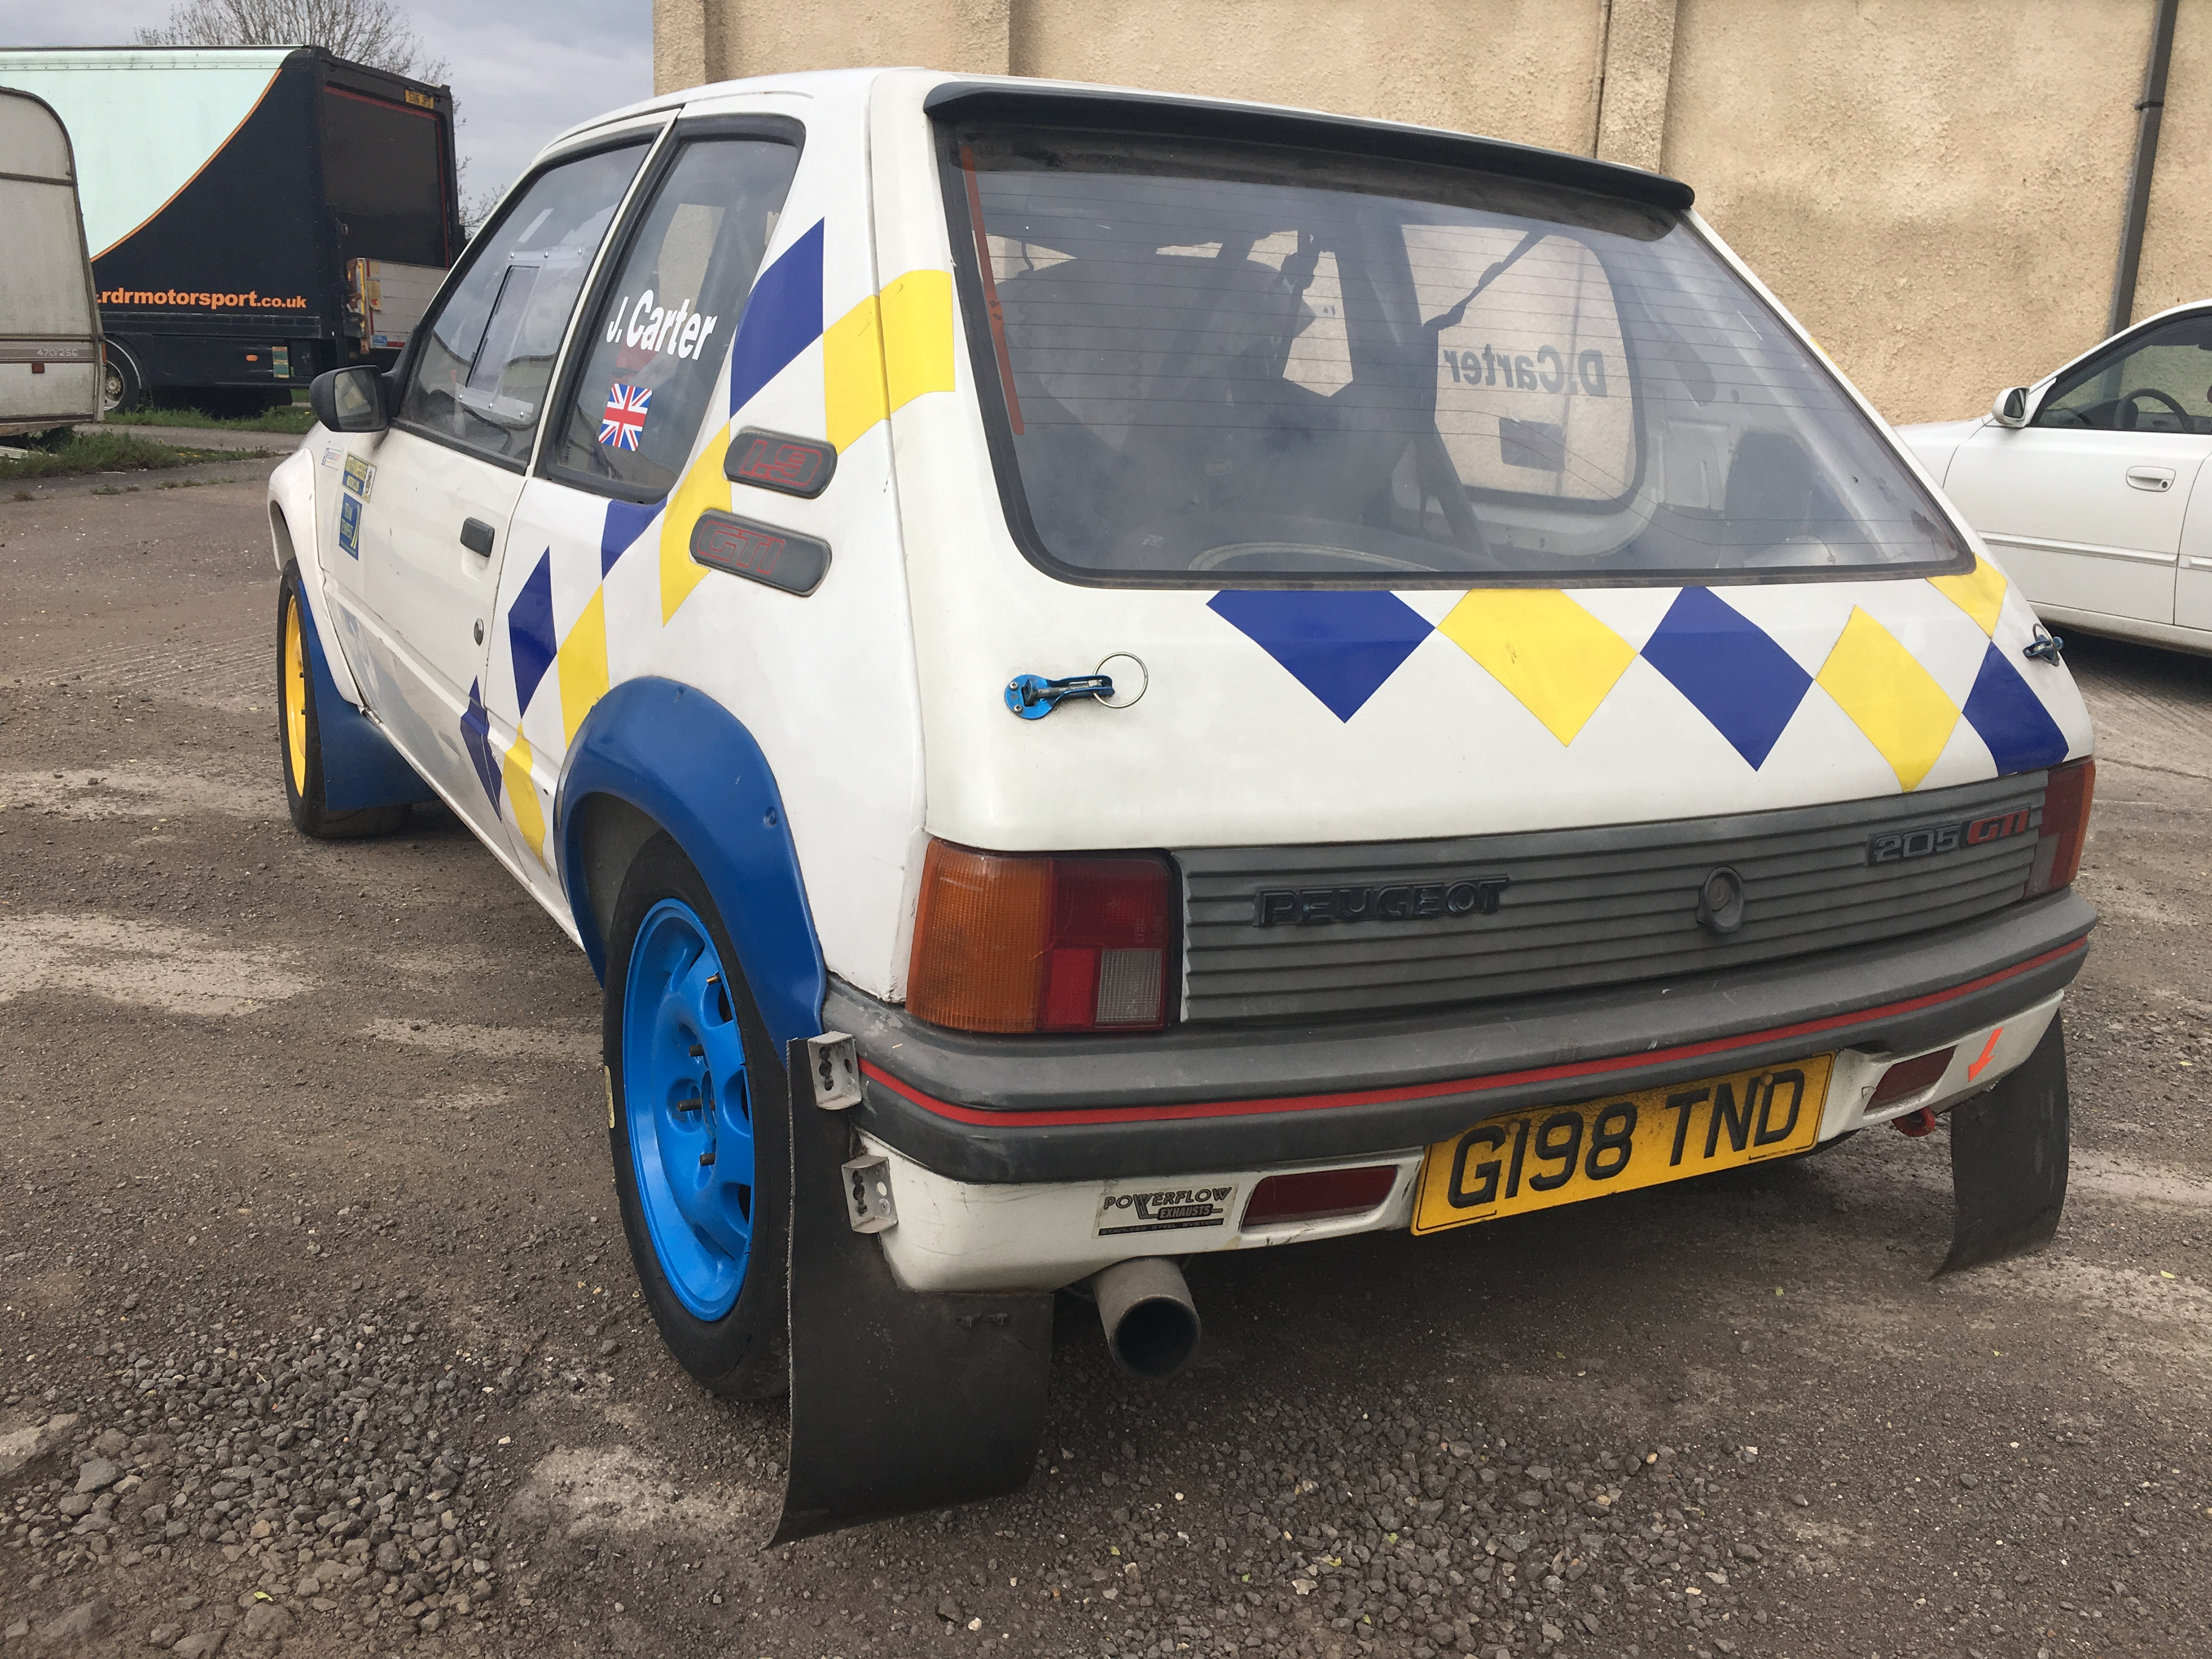 peugeot 205 gti fully prepared rally car for sale uk. Black Bedroom Furniture Sets. Home Design Ideas